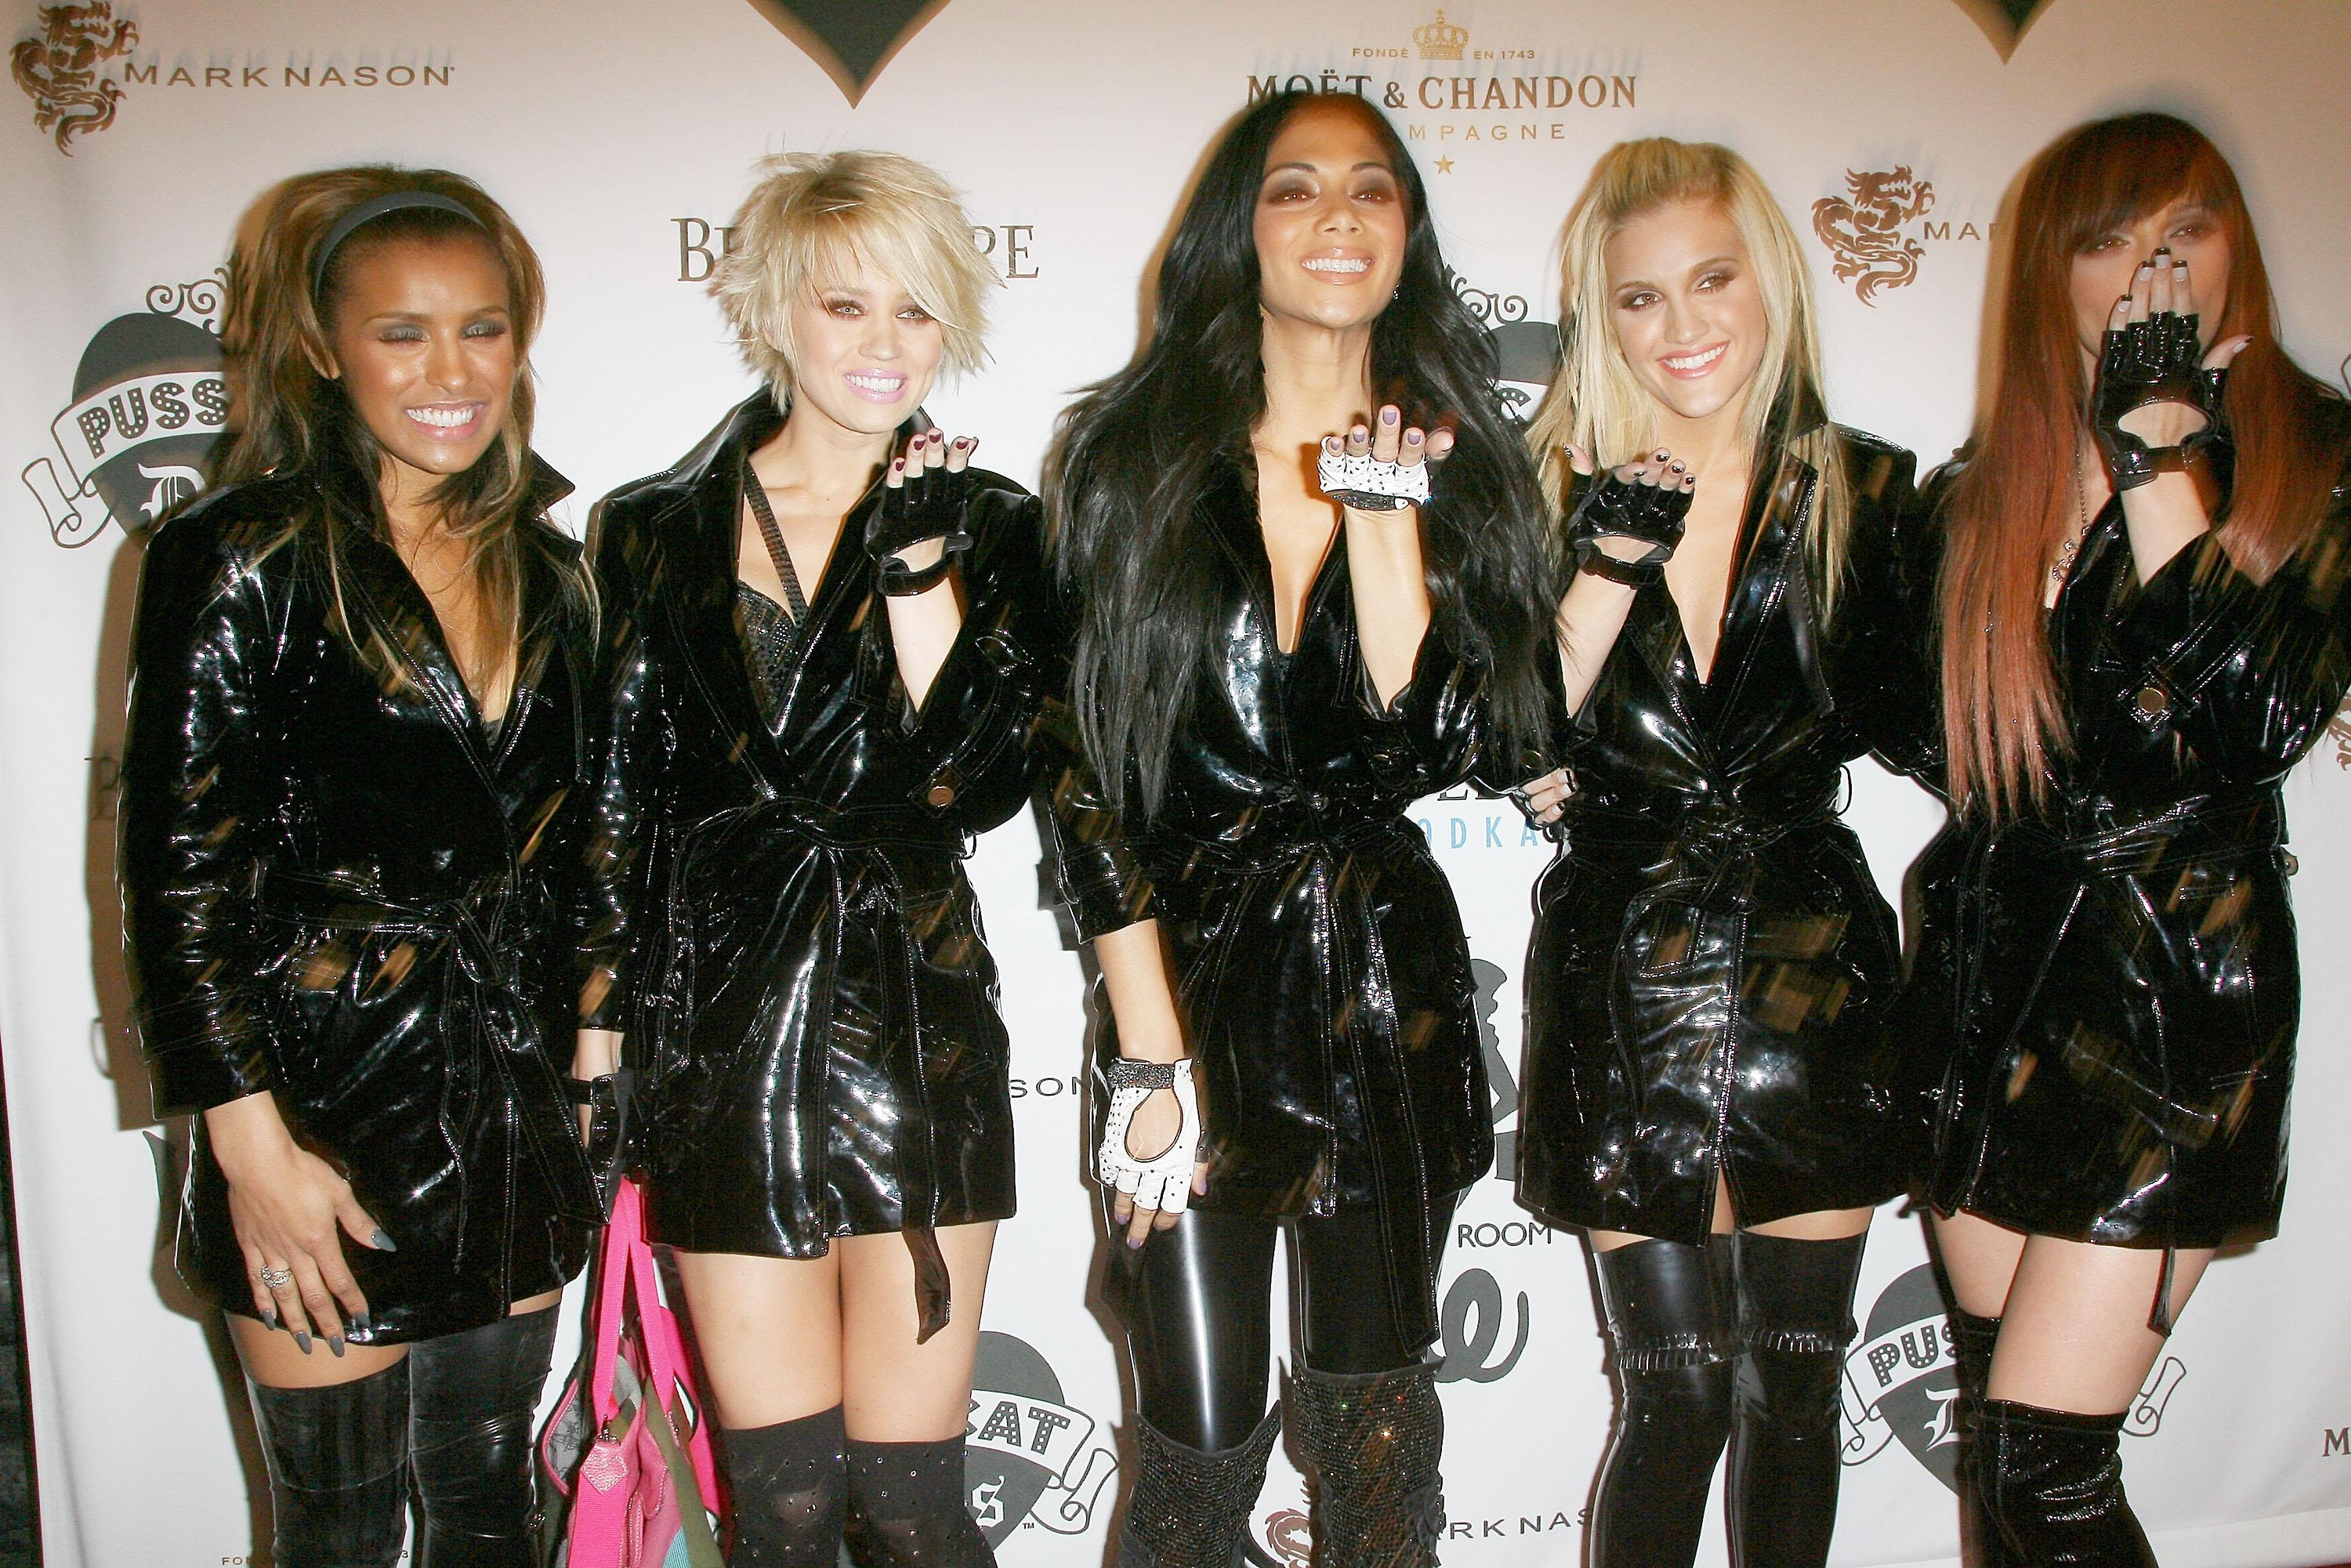 WEST HOLLYWOOD, CA - NOVEMBER 23: The Pussycat Dolls arrive at Opening Night Of The Pussycat Dolls Lounge at the Viper Room on November 23, 2008 in West Hollywood, California. (Photo by Valerie Macon/Getty Images)